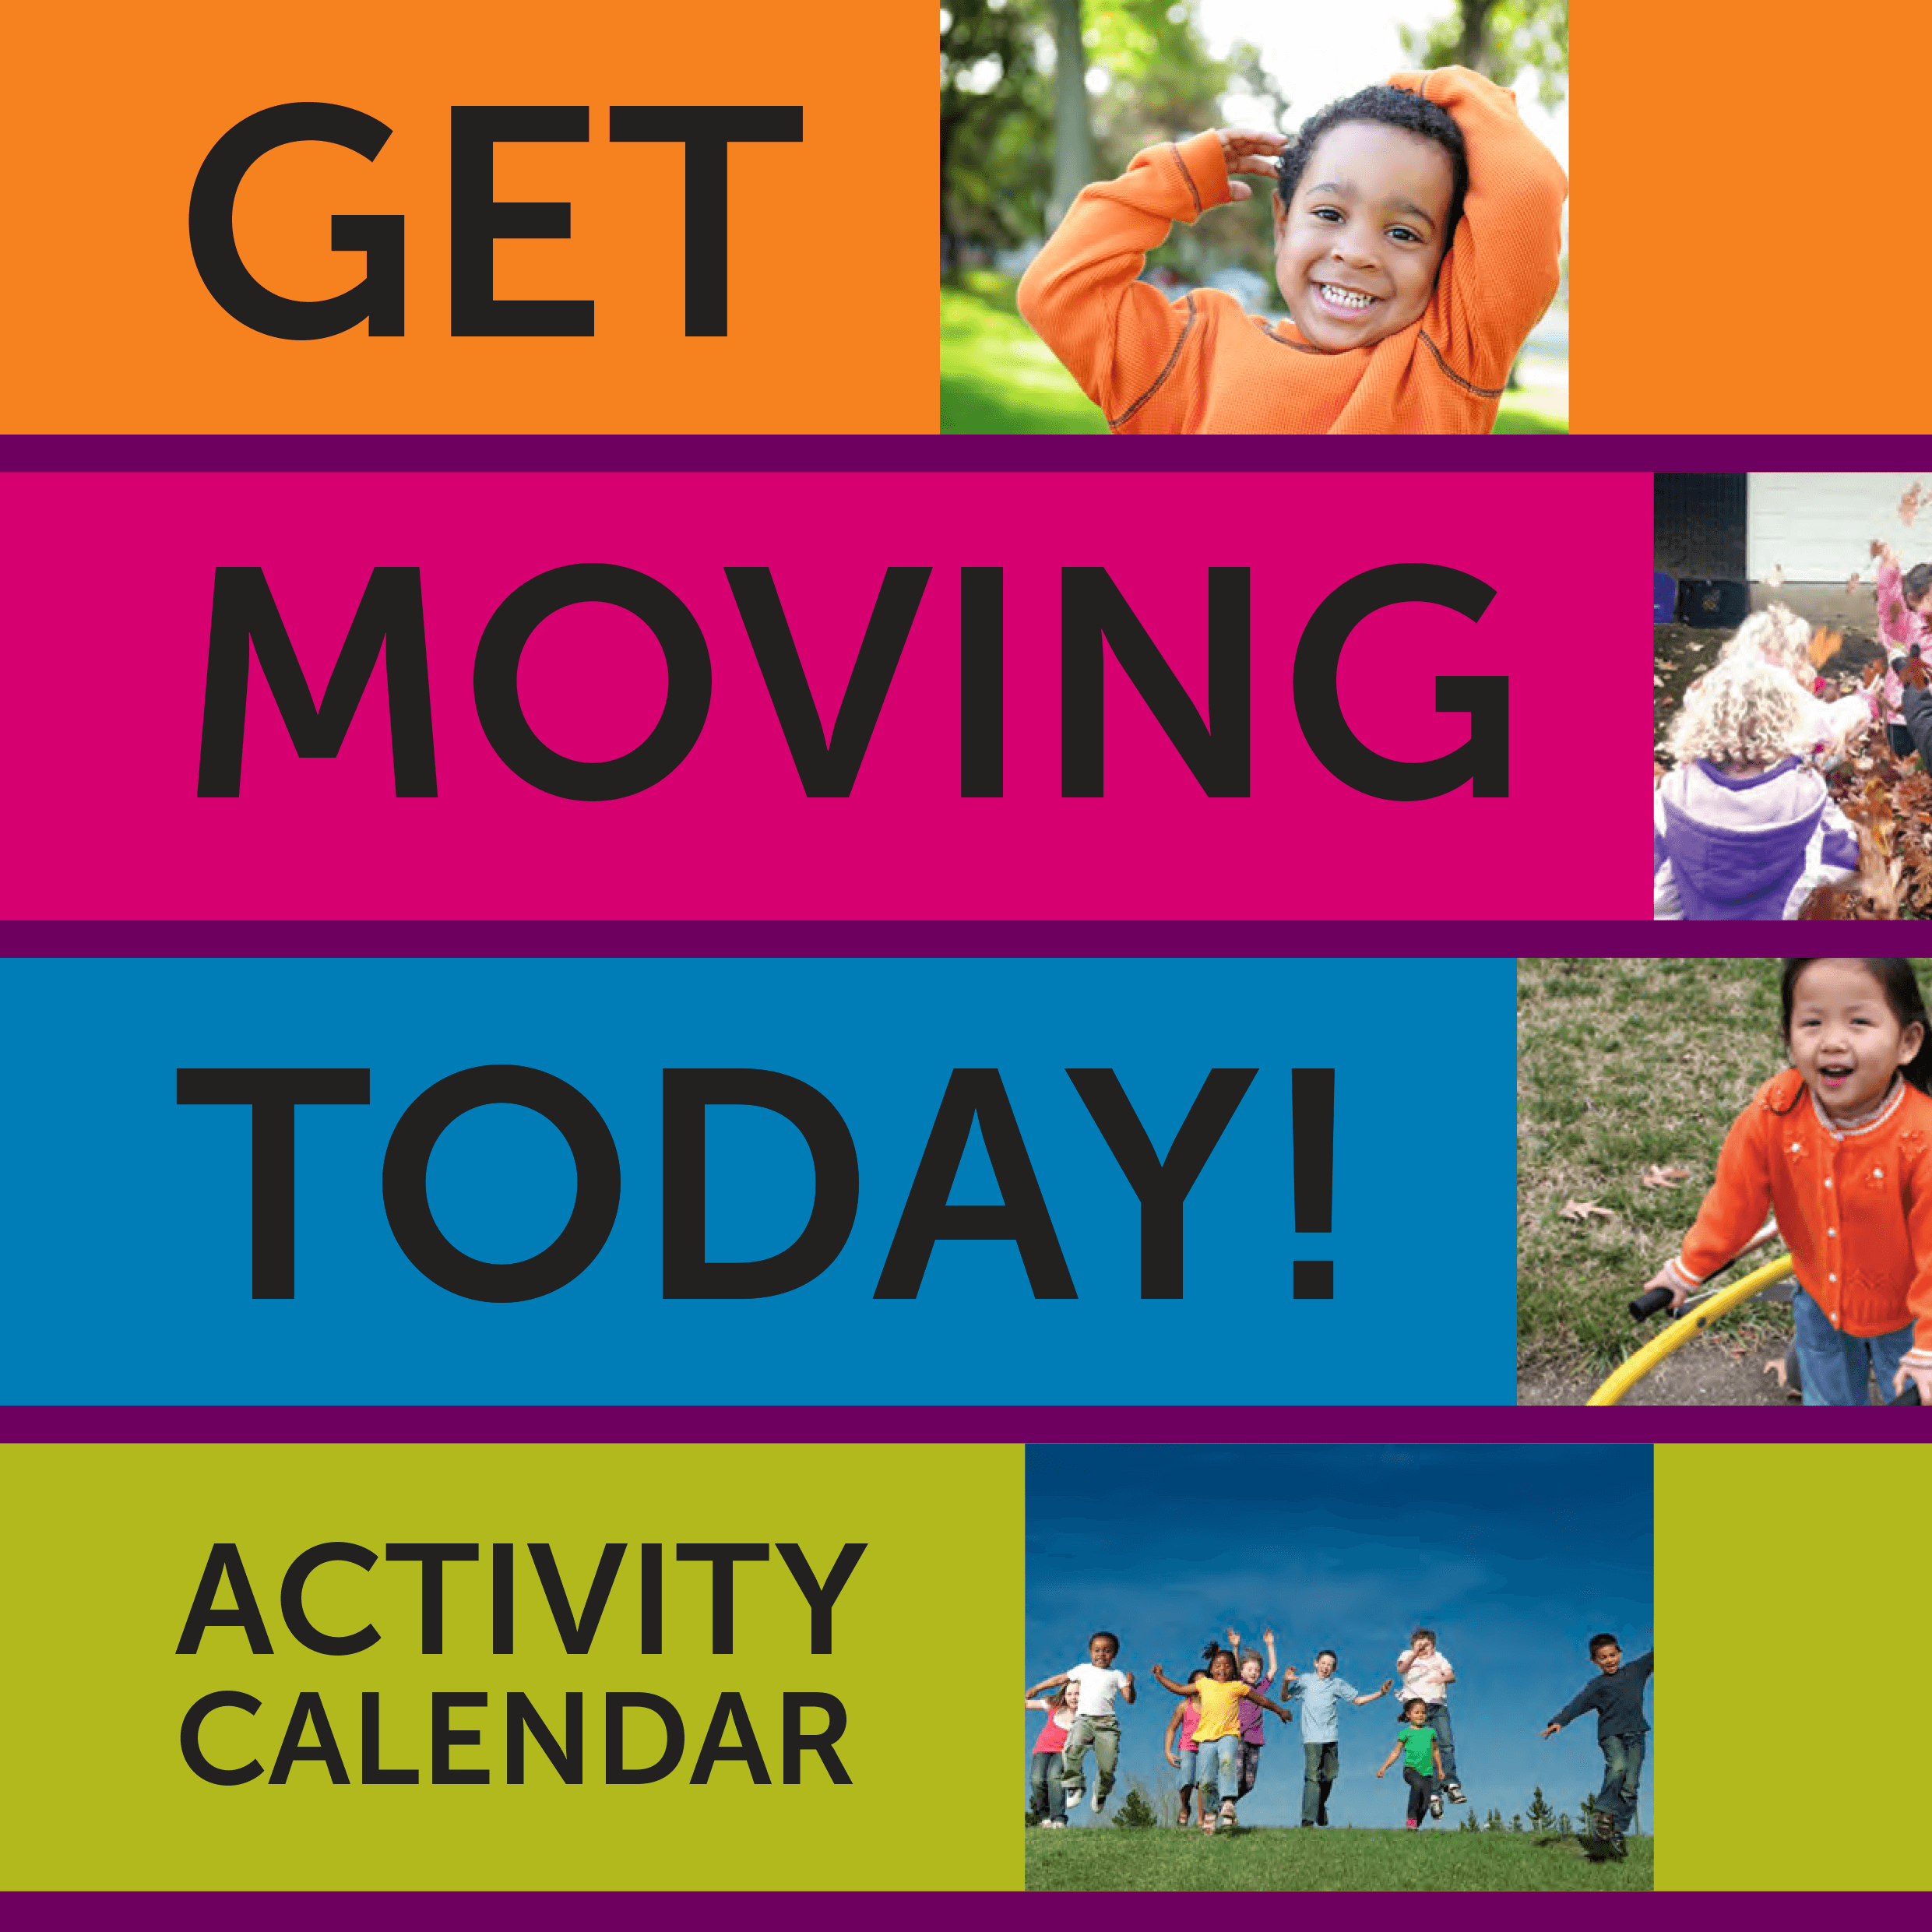 Get Moving Today Activity Calendar - December